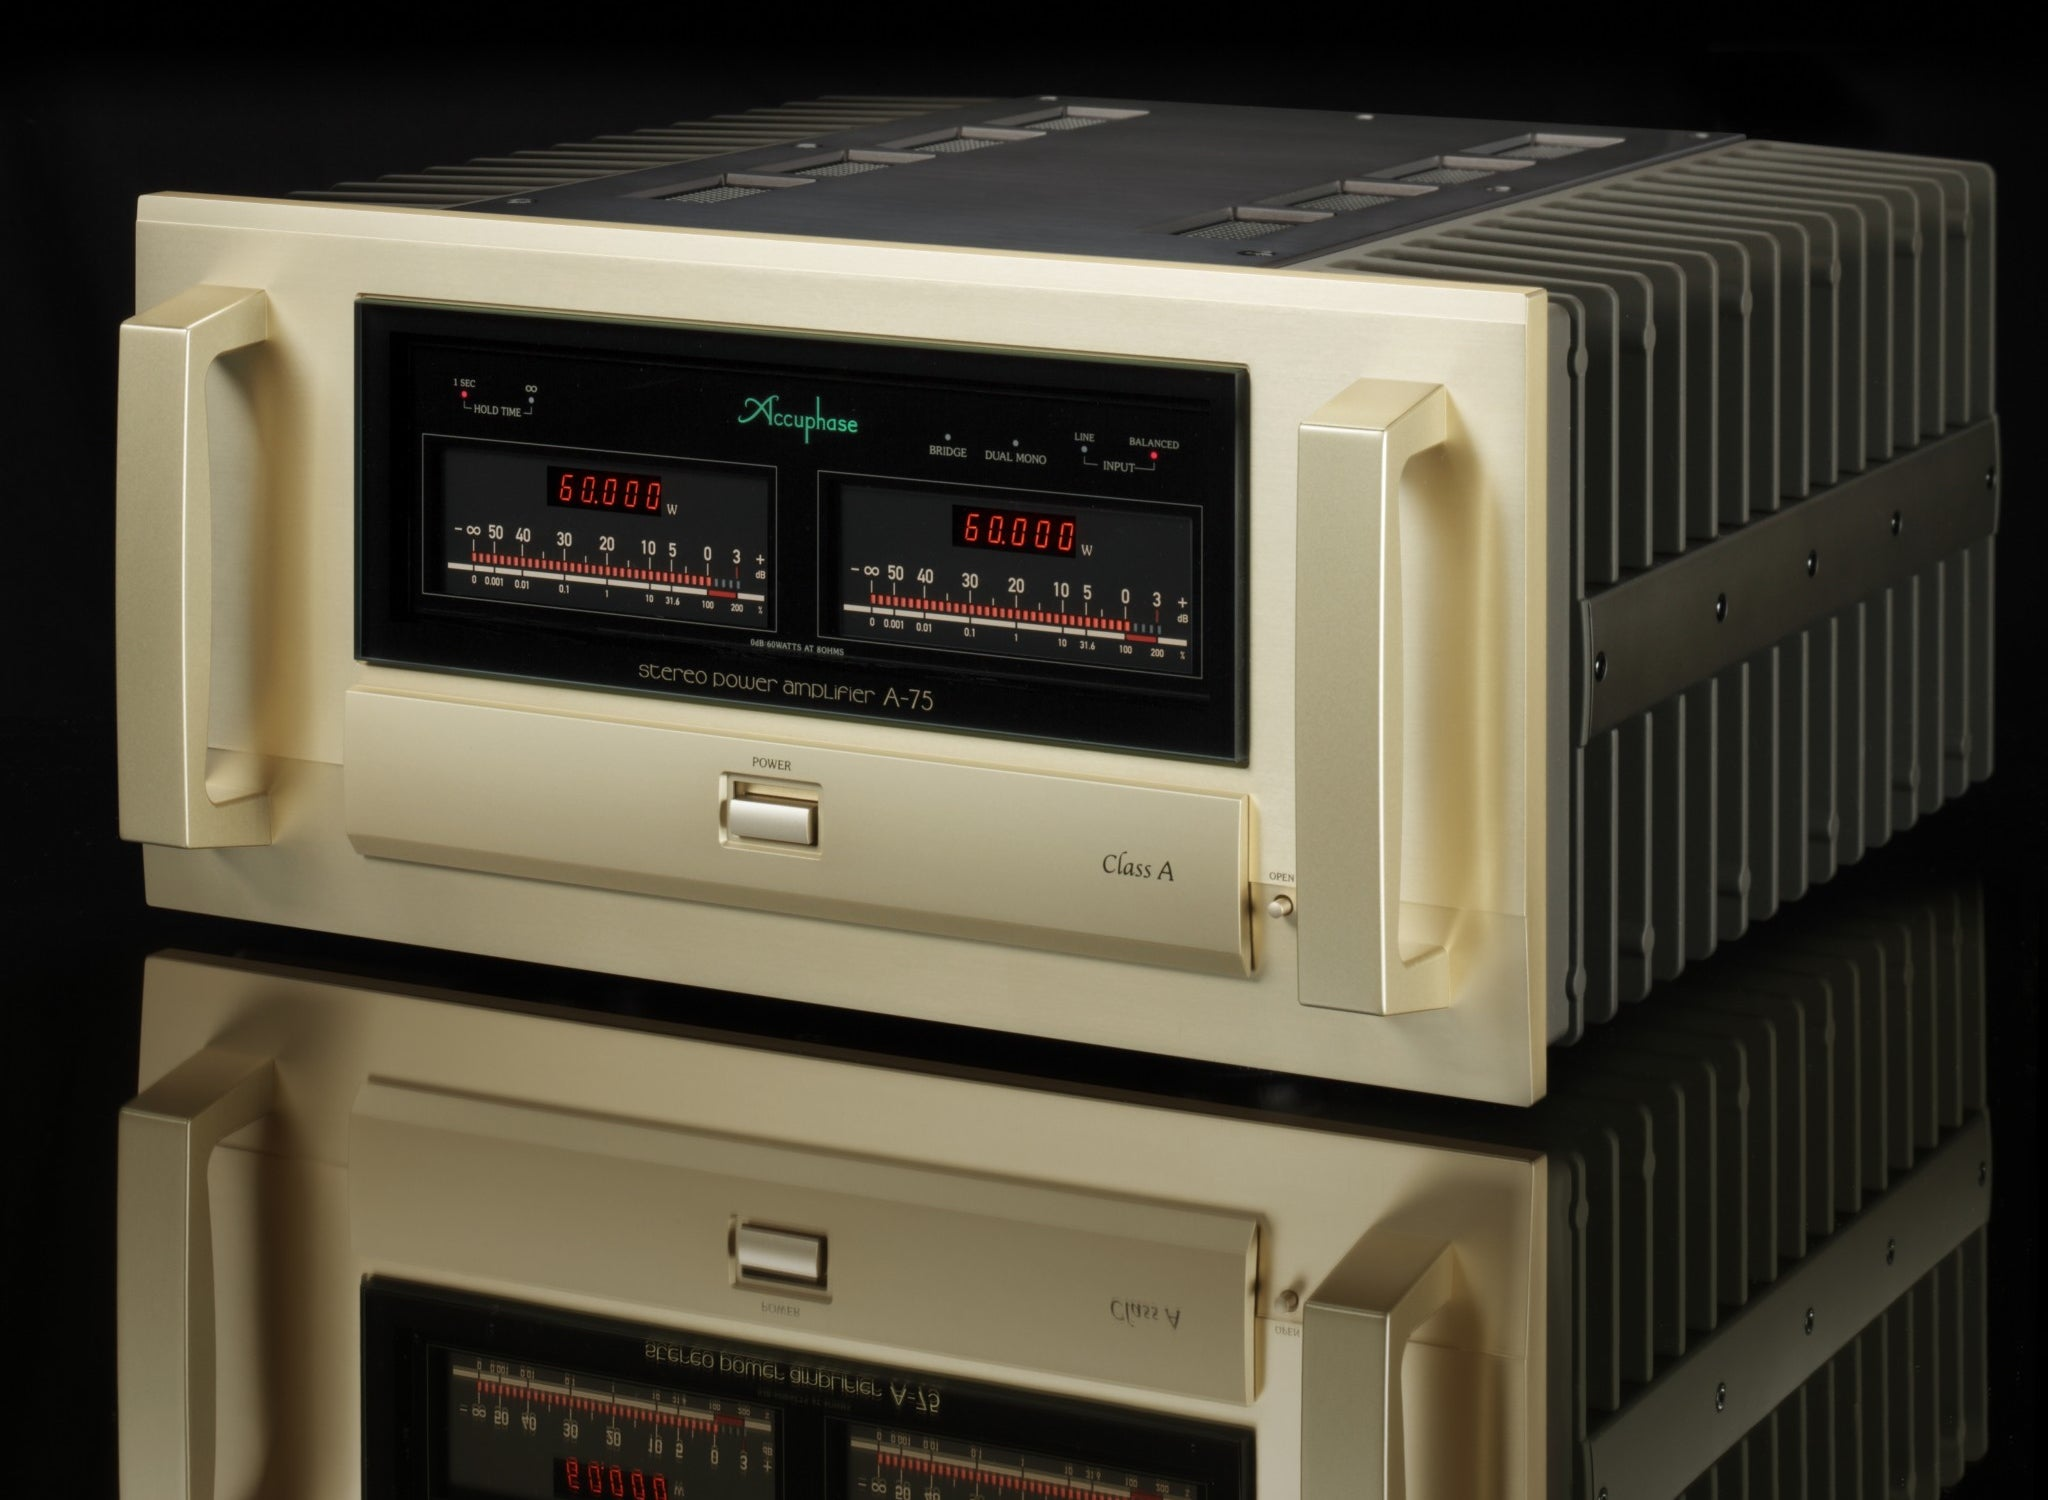 Accuphase Class A Stereo Power Amp A-75